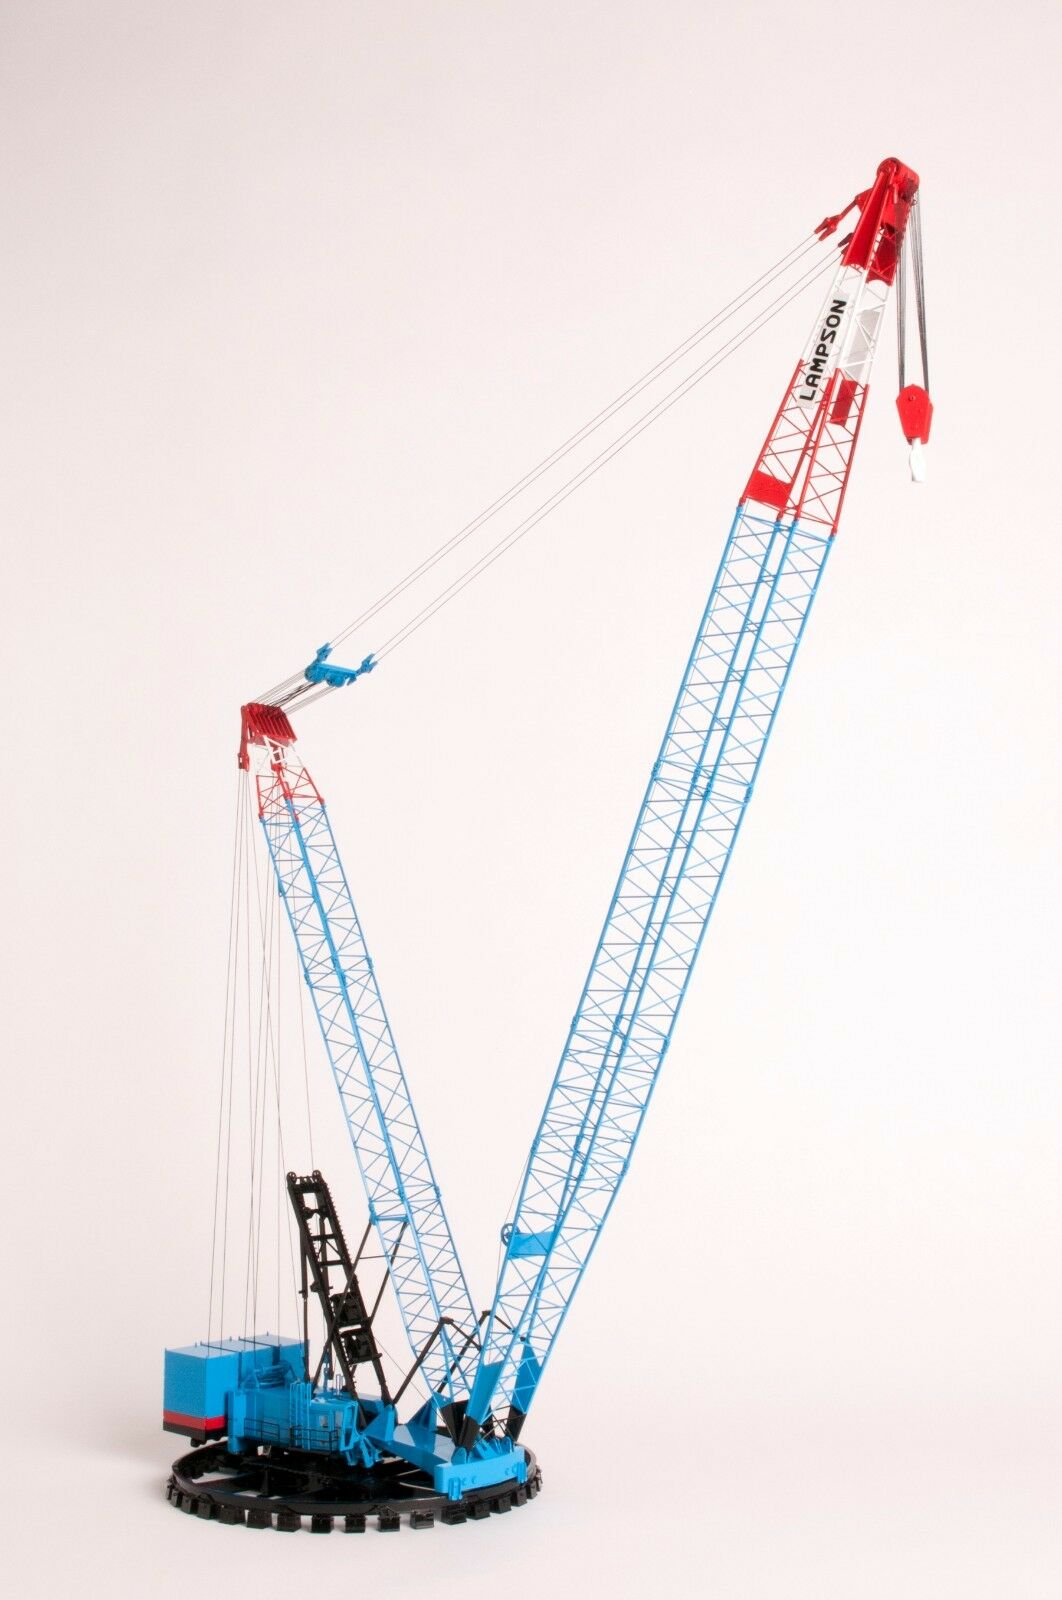 Manitowoc 4600 Ringer Crane -    LAMPSON  - 1 87 - CCM - Brass a5bfd8